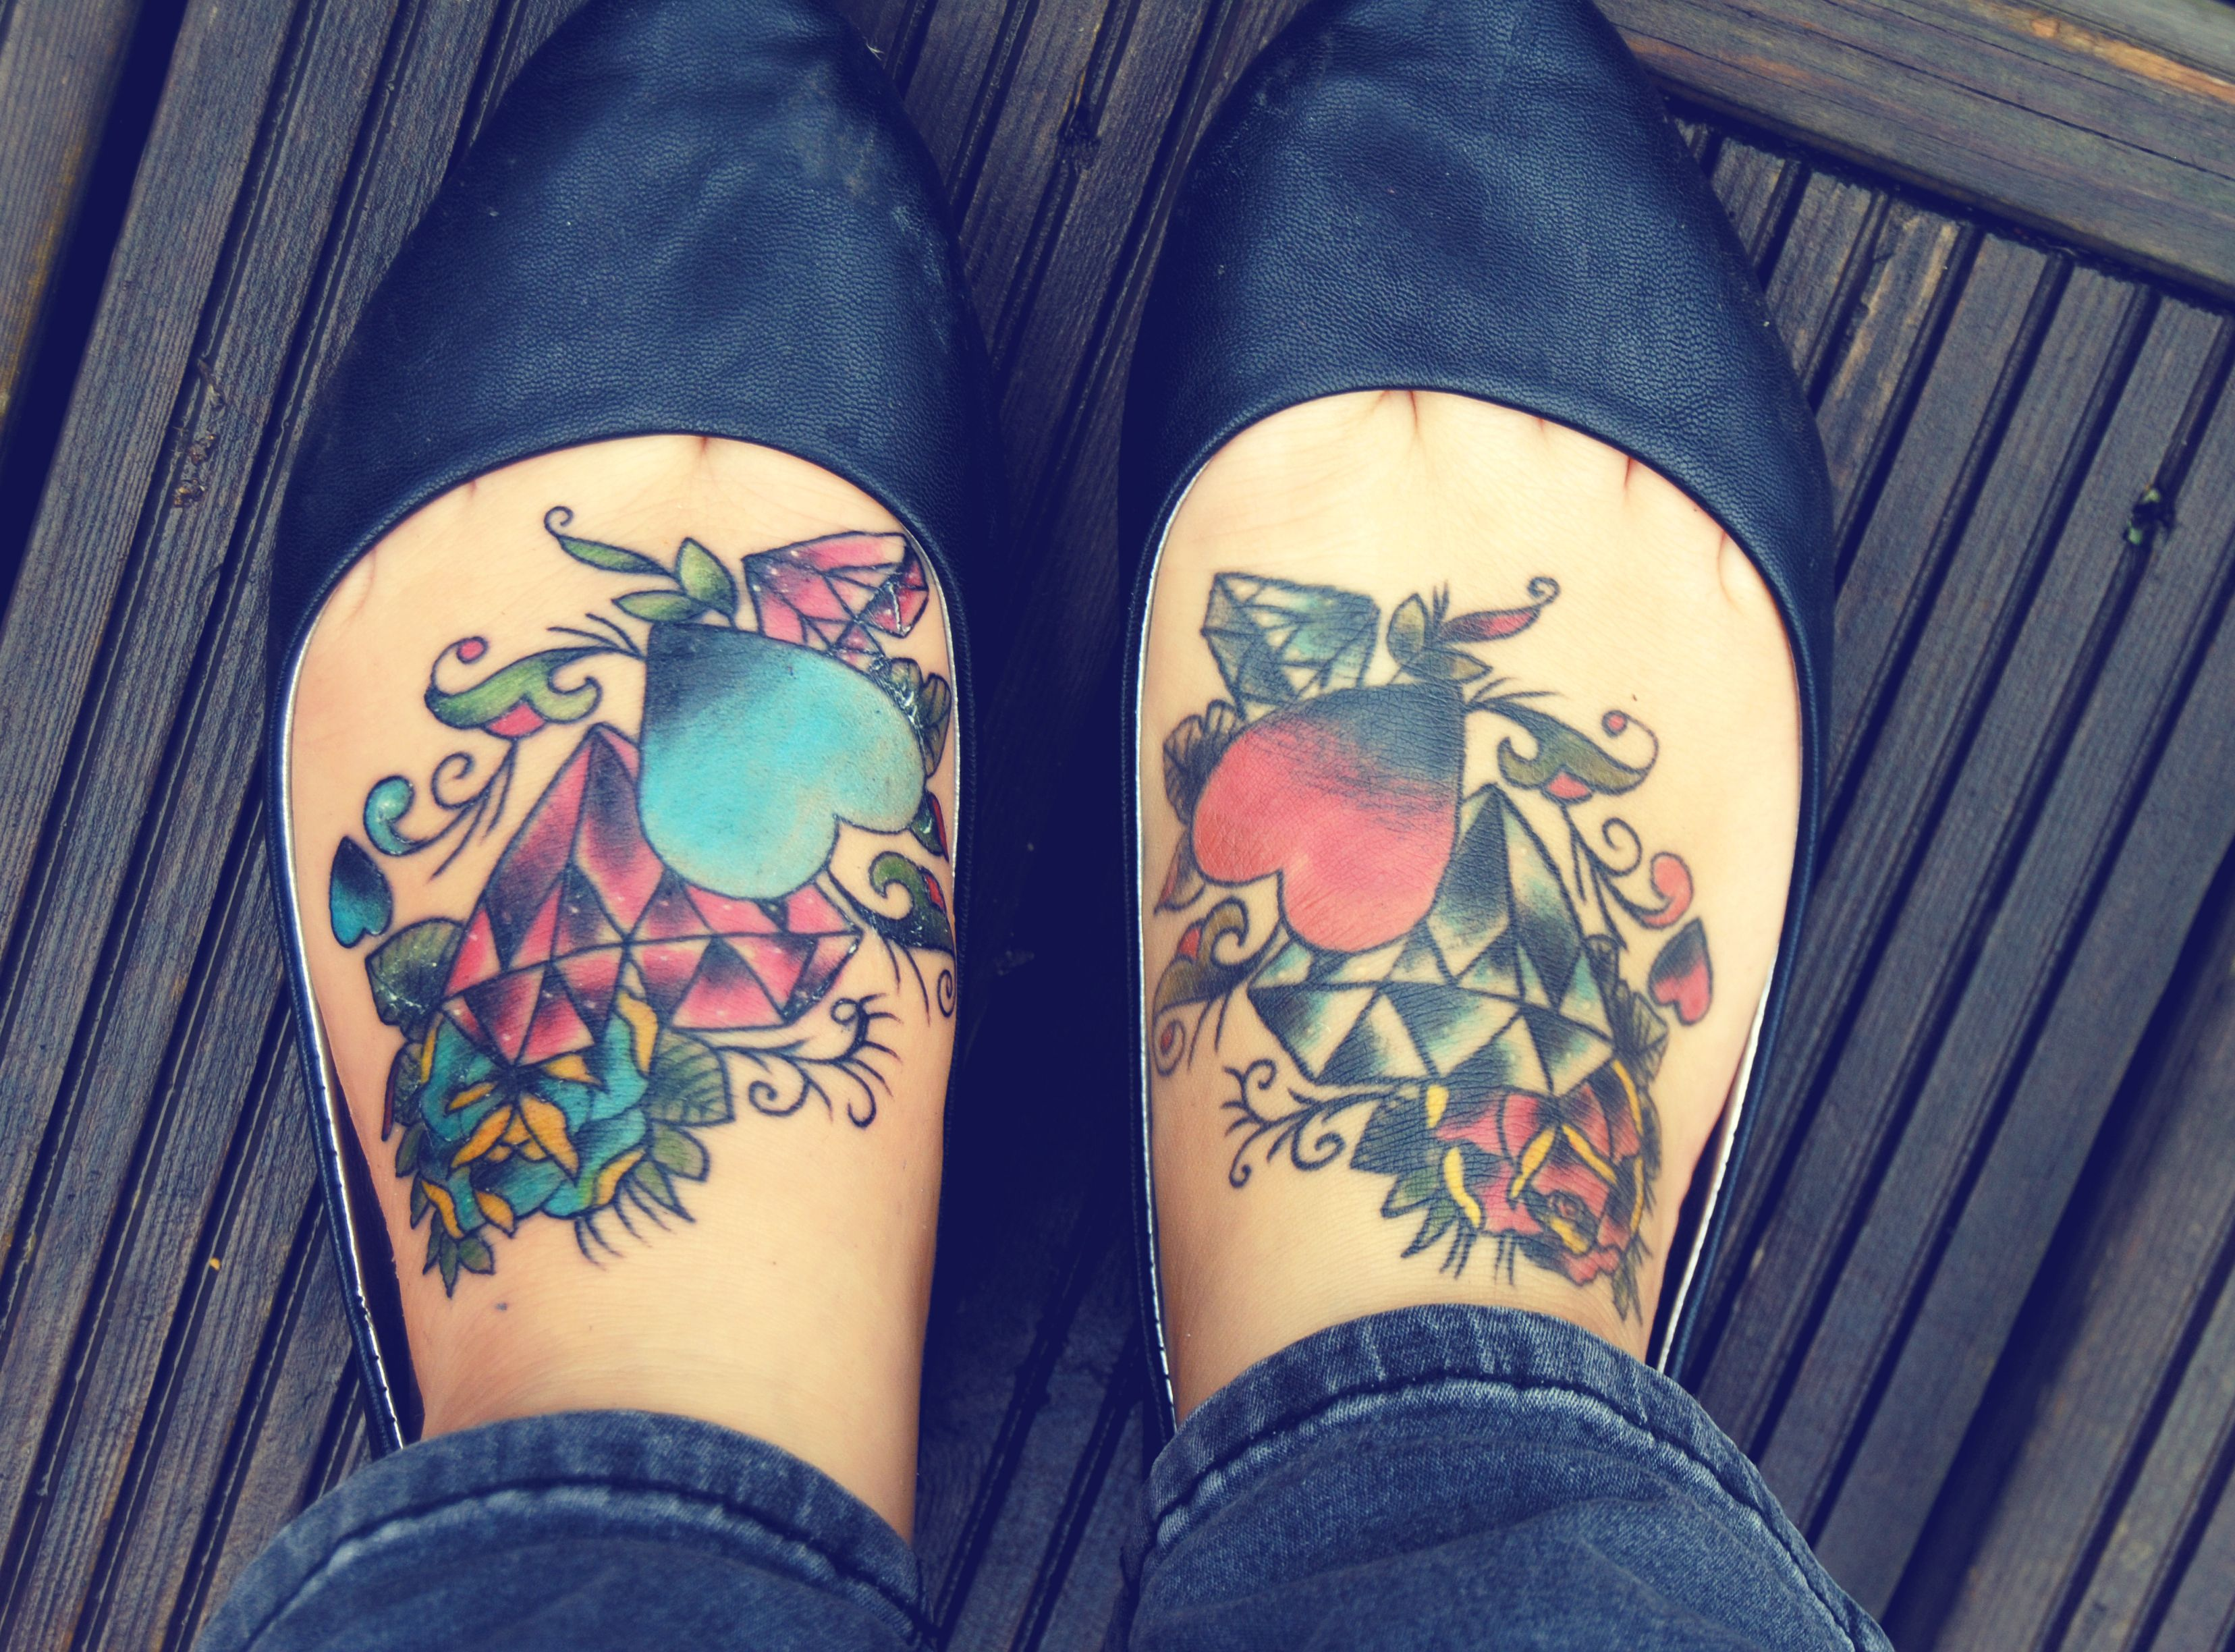 310 best Tattoo images on Pinterest | Future tattoos, Psalm 46 and ...